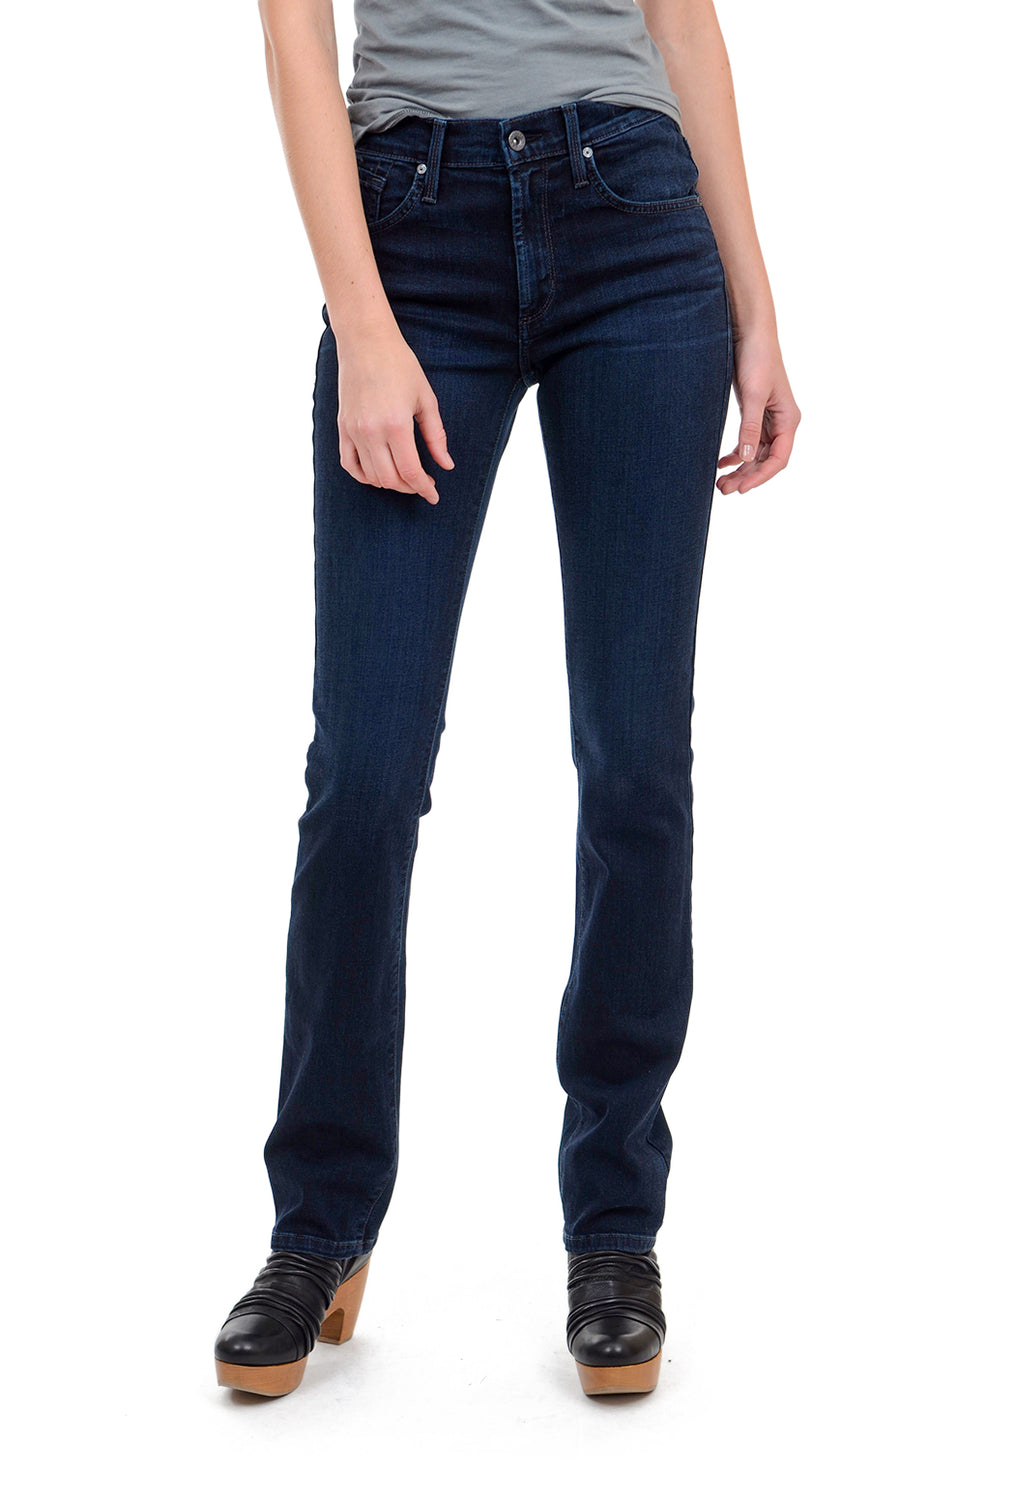 James Jeans Hunter Straight-Leg Denim, Bombshell